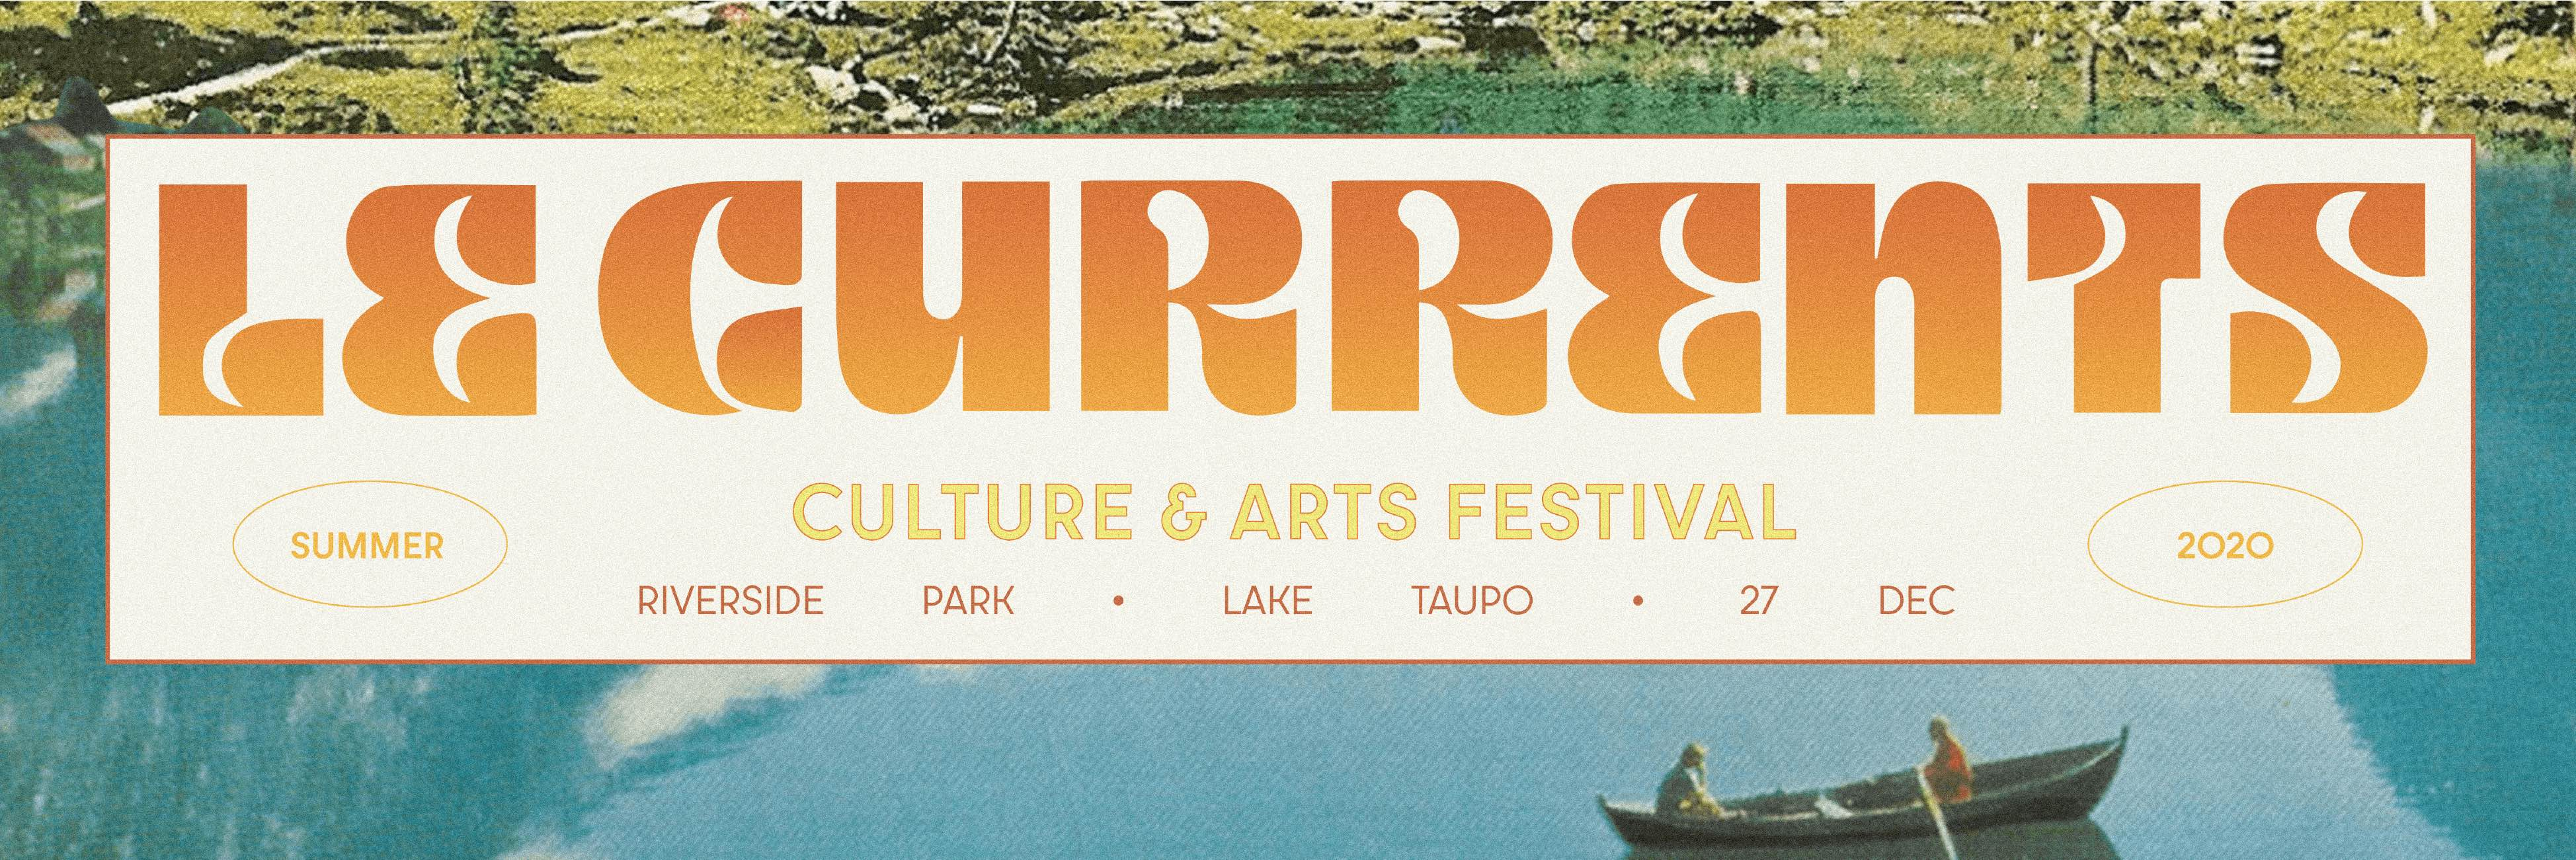 Tickets for LE CURRENTS - Taupo in Taupo from Ticketspace